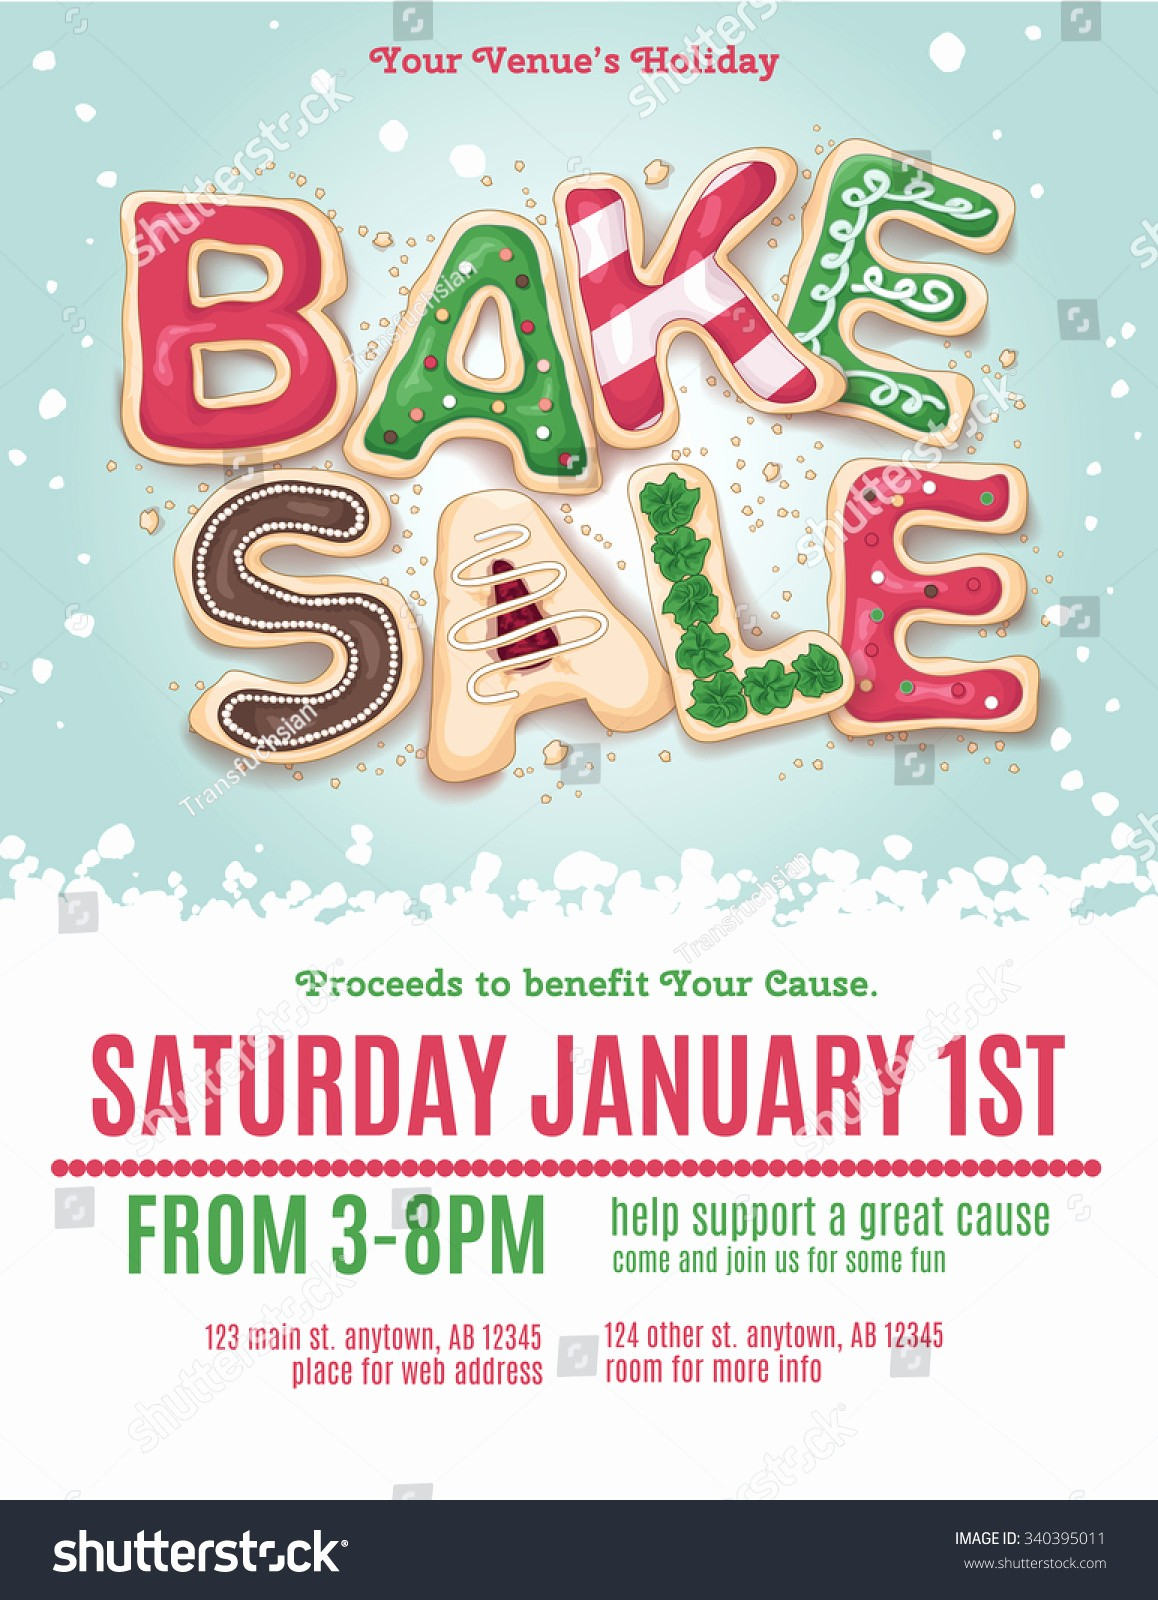 Bake Sale Flyer Template Word Lovely Christmas Holiday Bake Sale Flyer Template Stock Vector